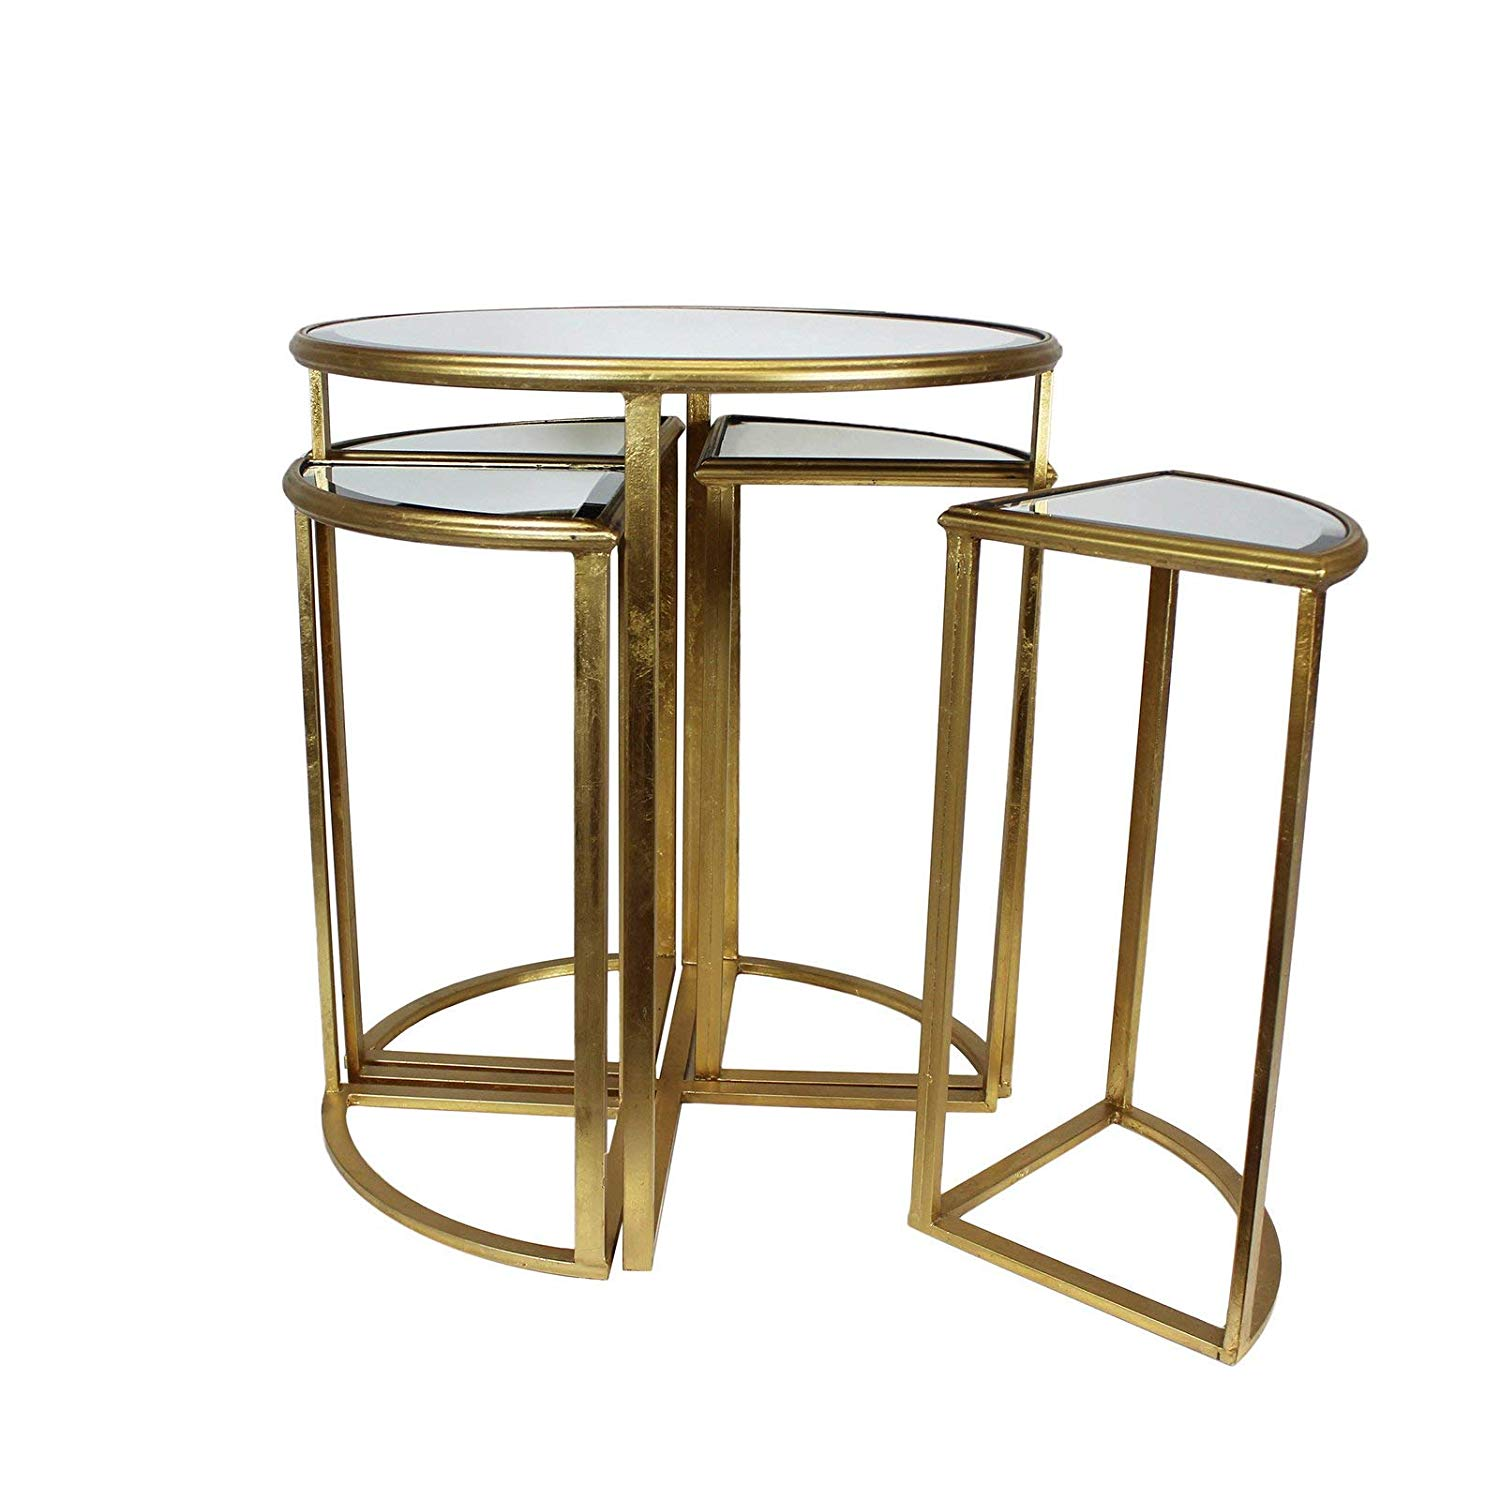 urban designs round gold mirror accent table home kitchen metal shabby chic desk grey chairs french braid quilt pattern runner hobby lobby decorations modern dressers toronto